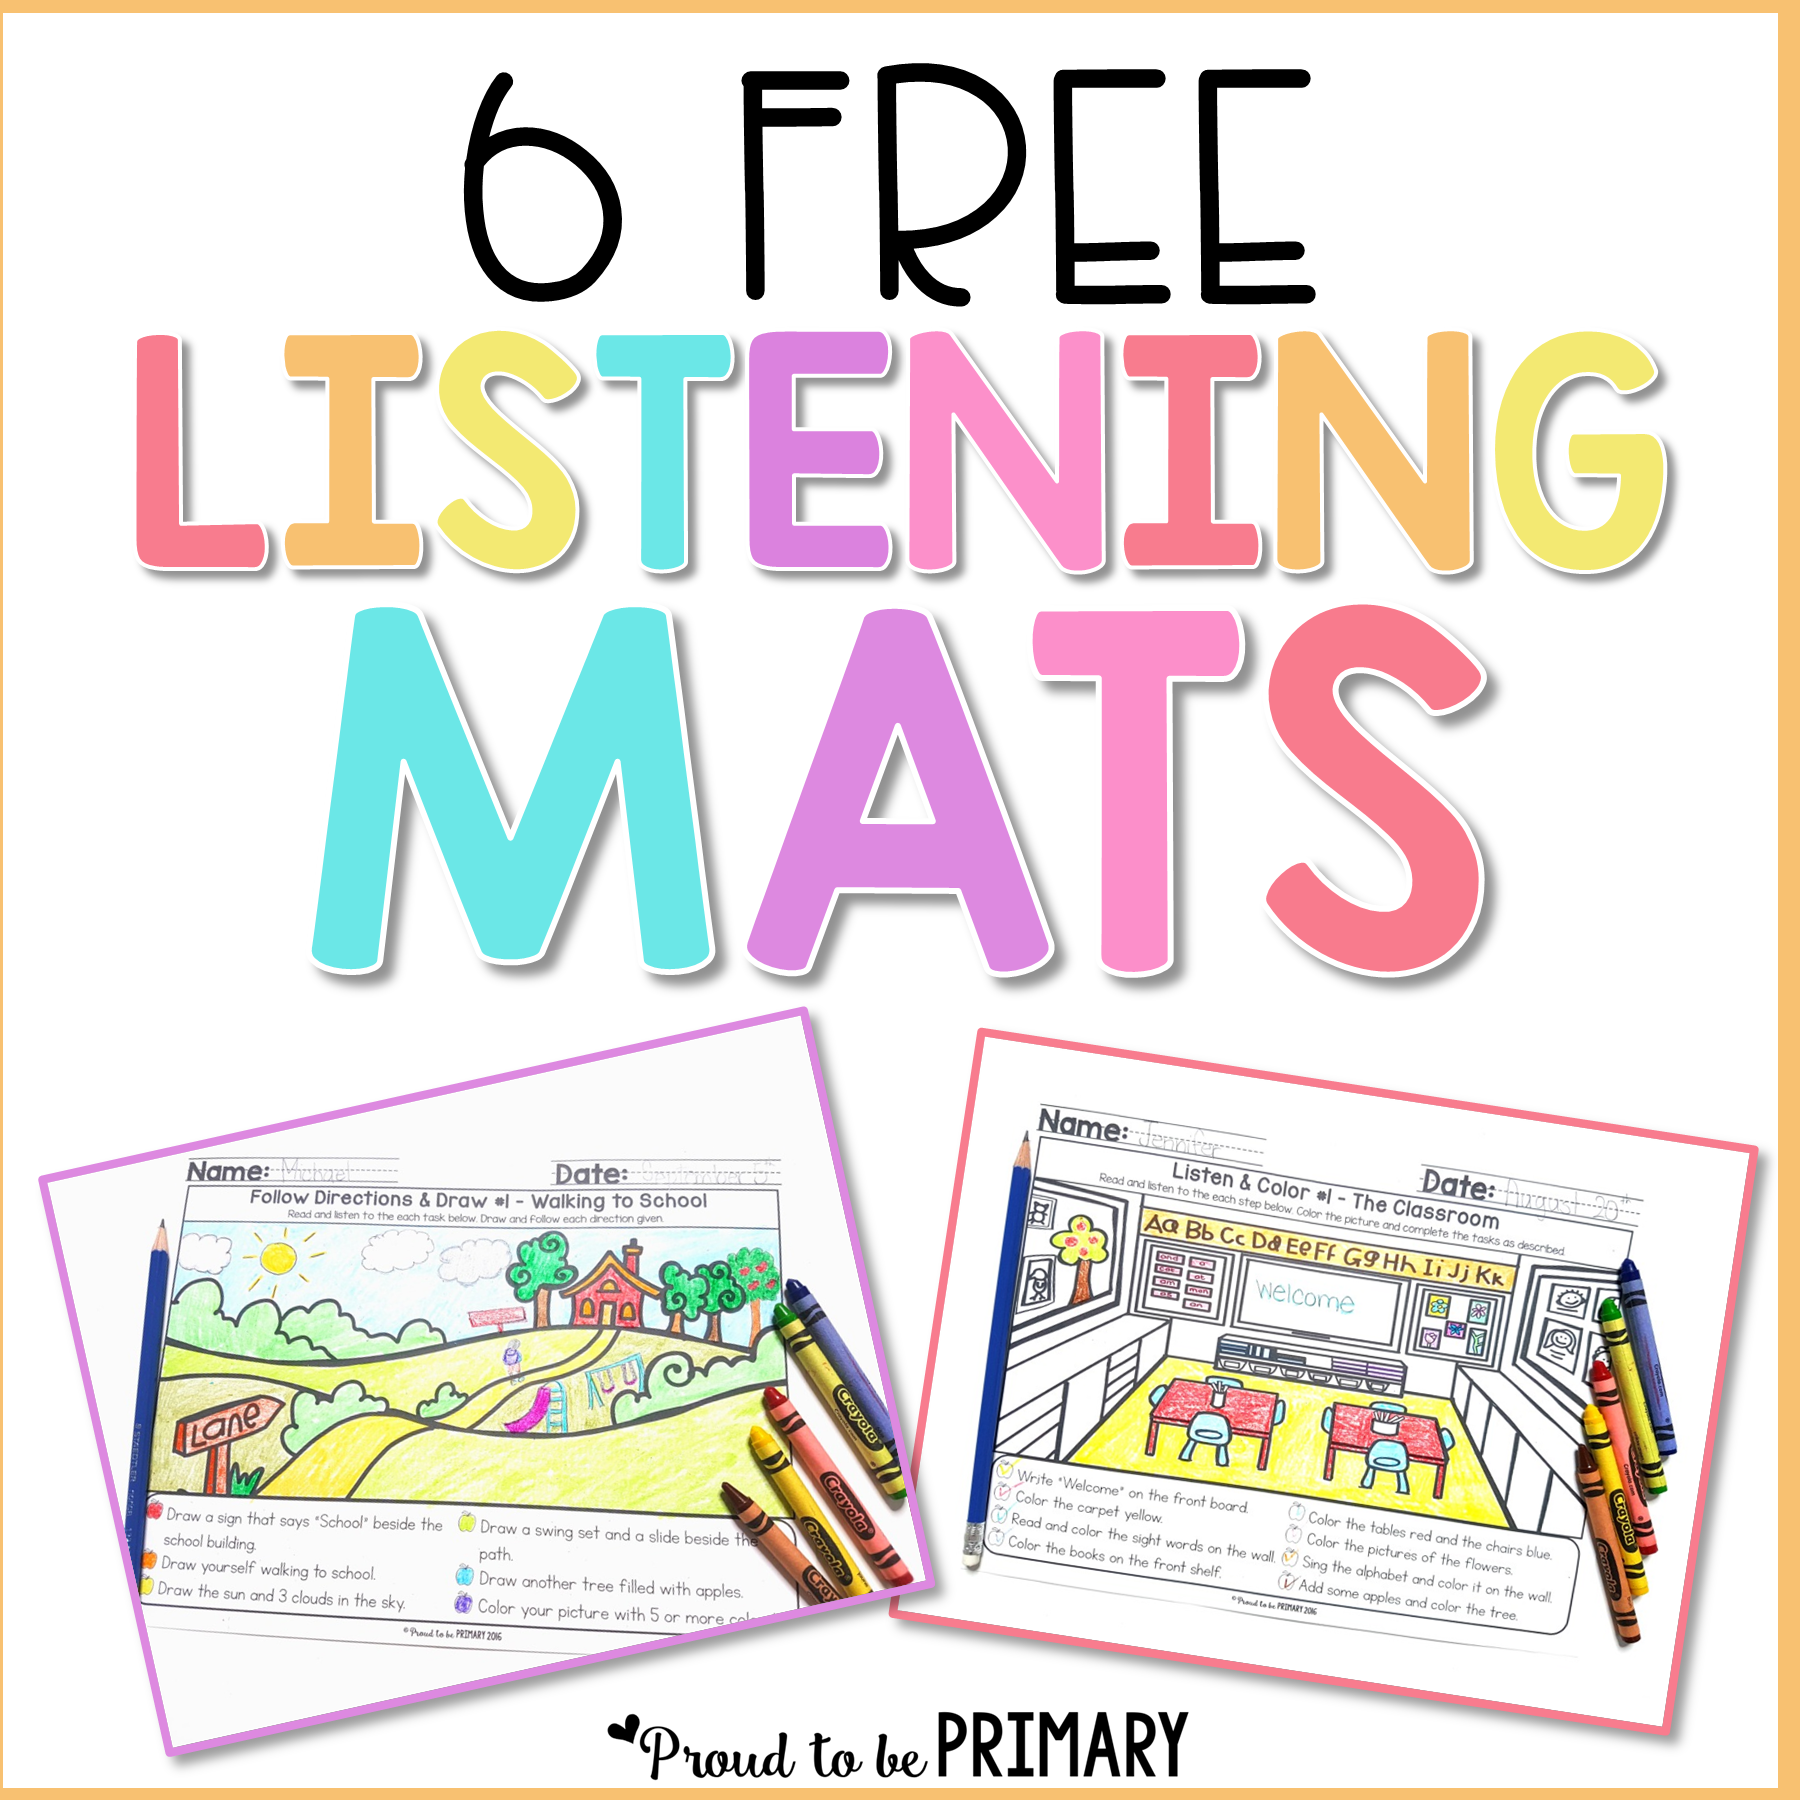 7 Listening Activities to Get Your Students Attentive & Ready to